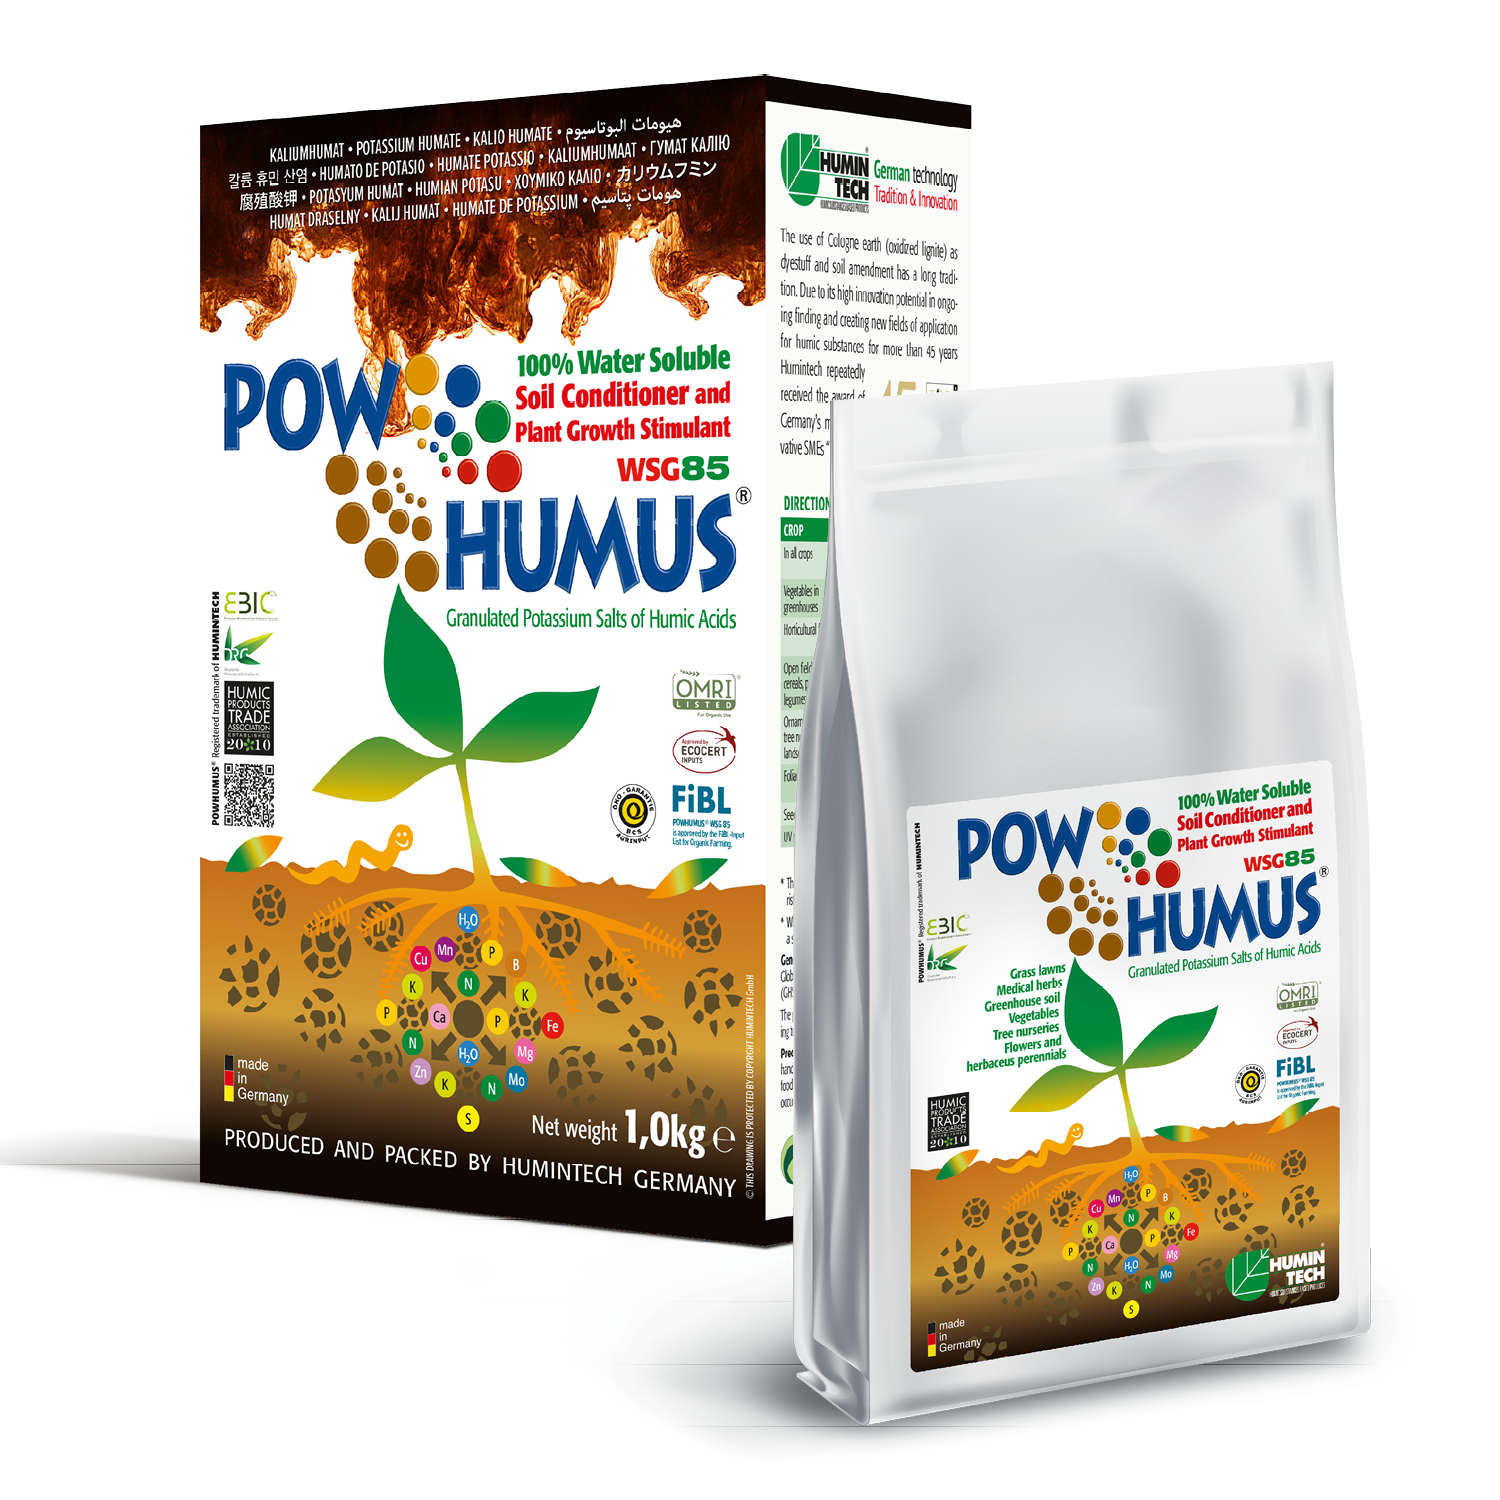 POWHUMUS WSG 85 100% water soluble Organic Soil Conditioner